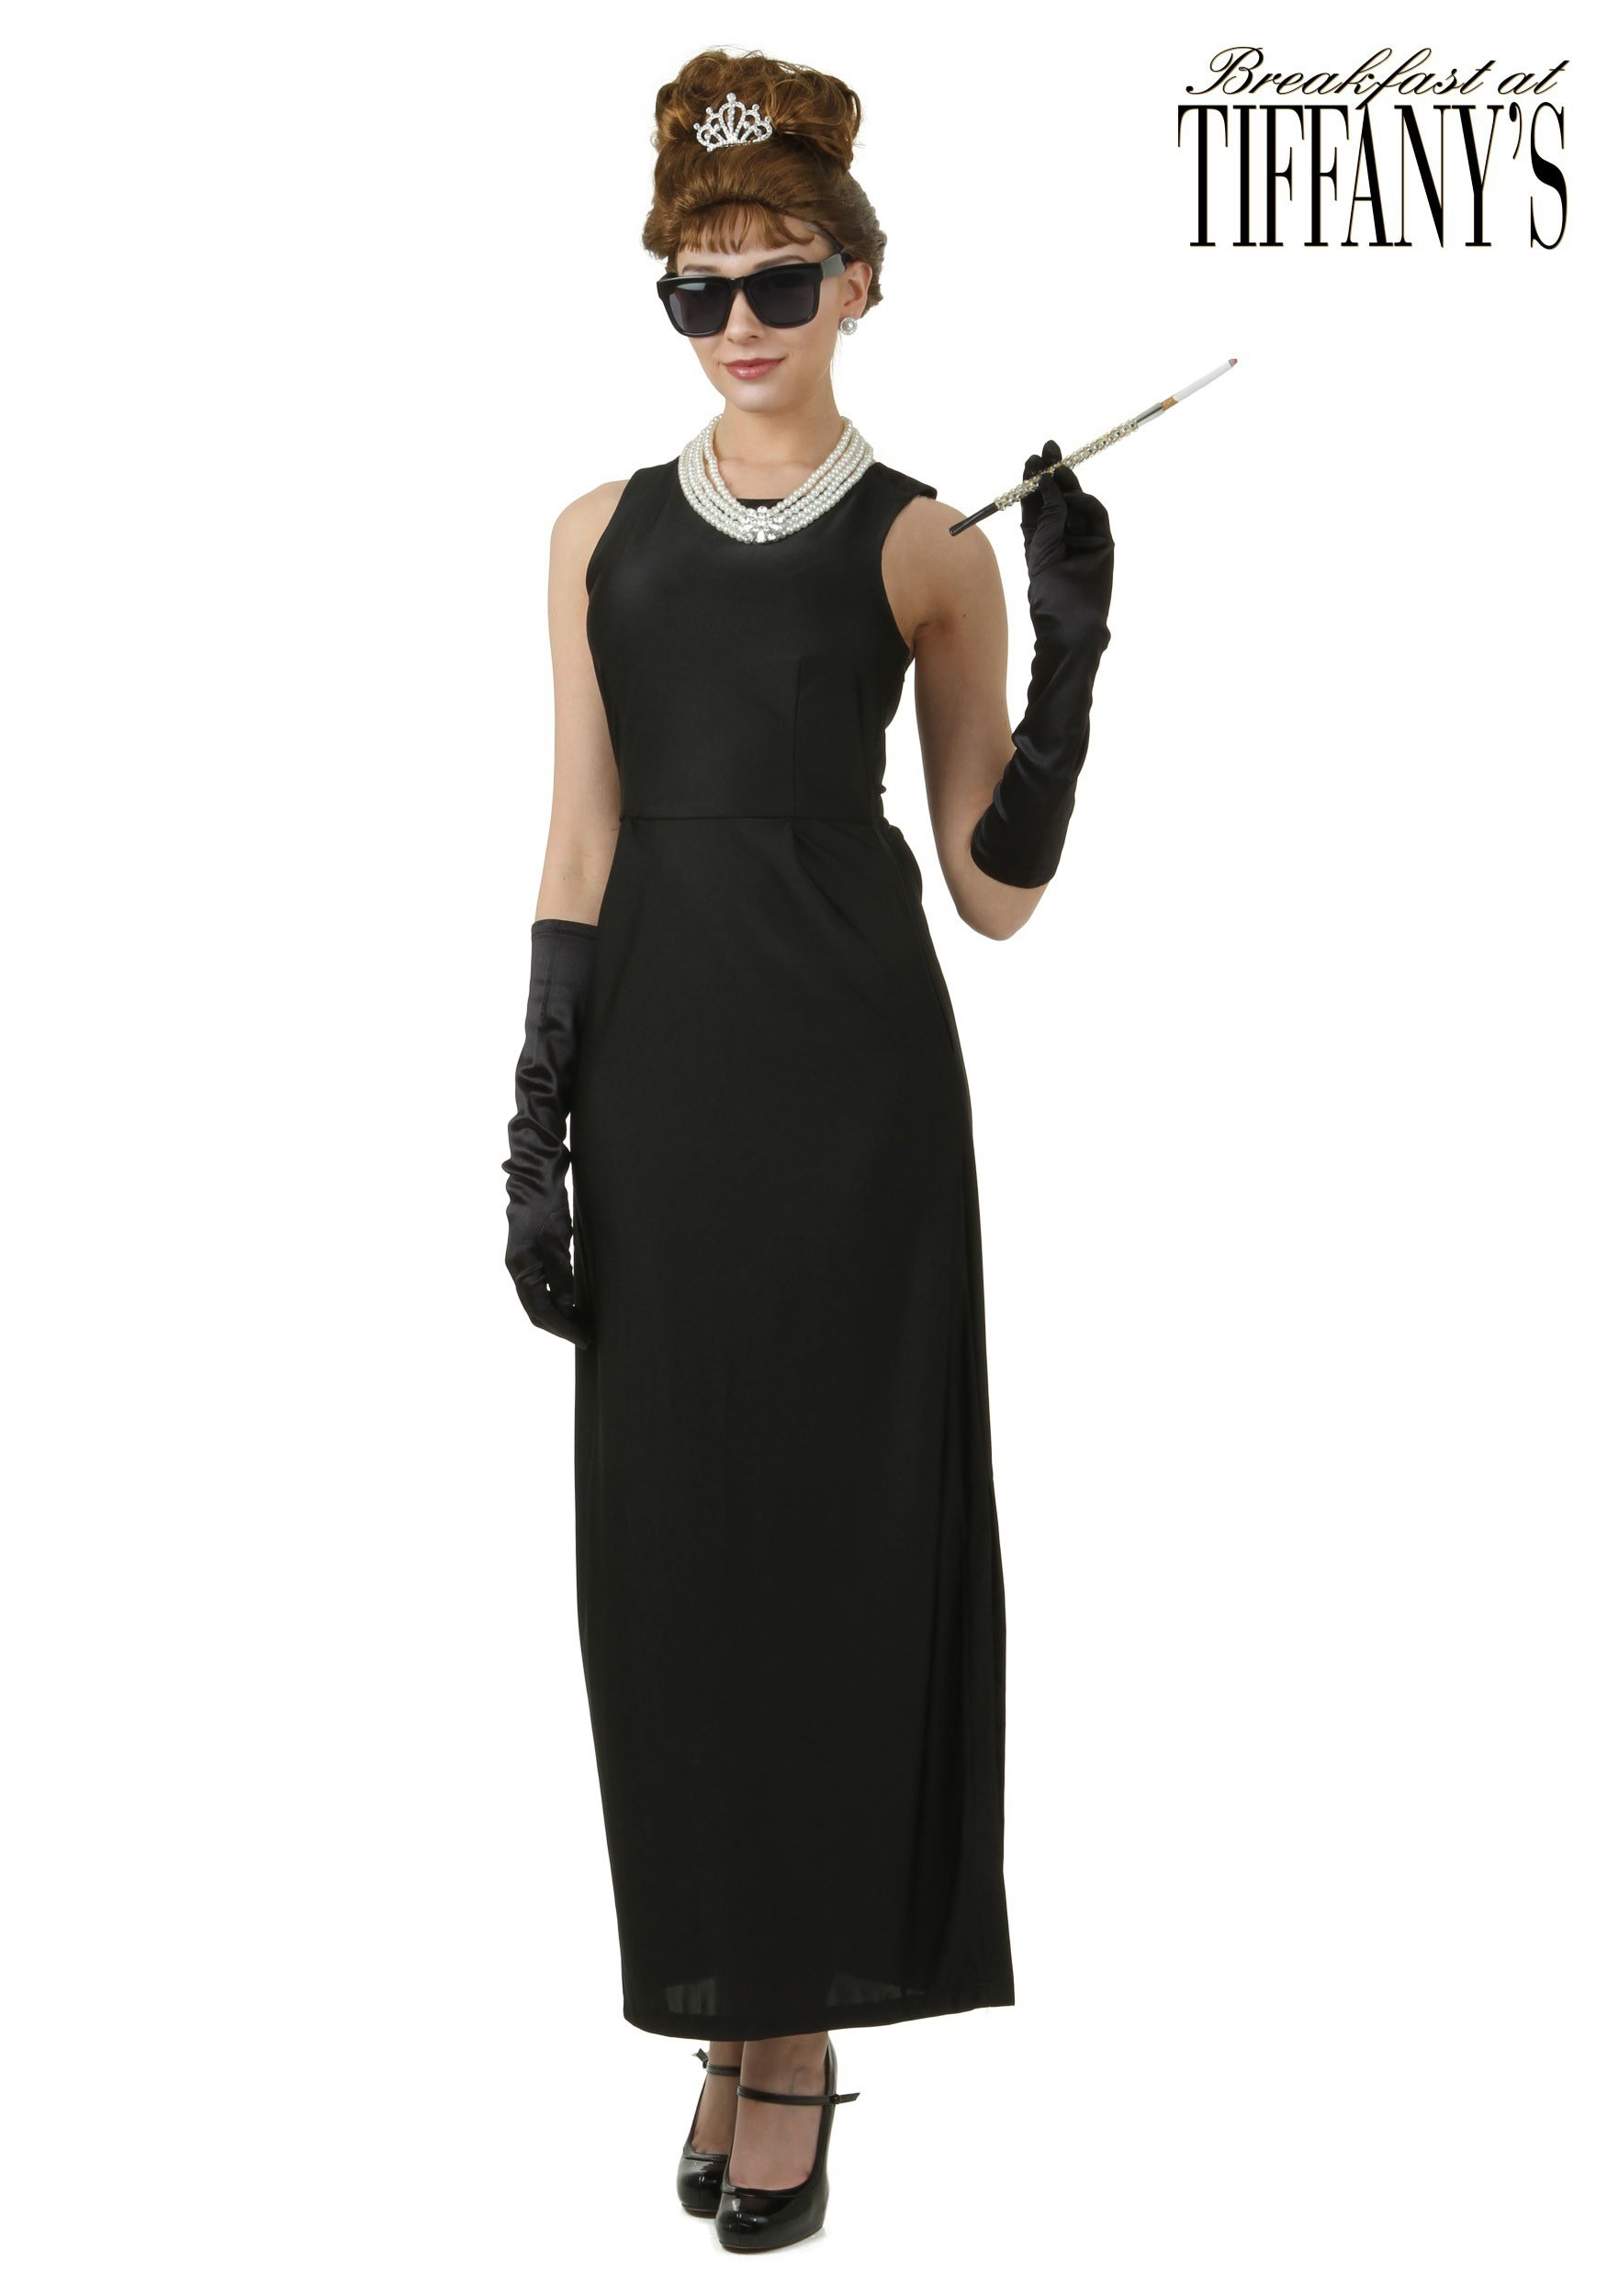 c91482f3e adult-breakfast-at-tiffanys-holly-golightly-costume.jpg